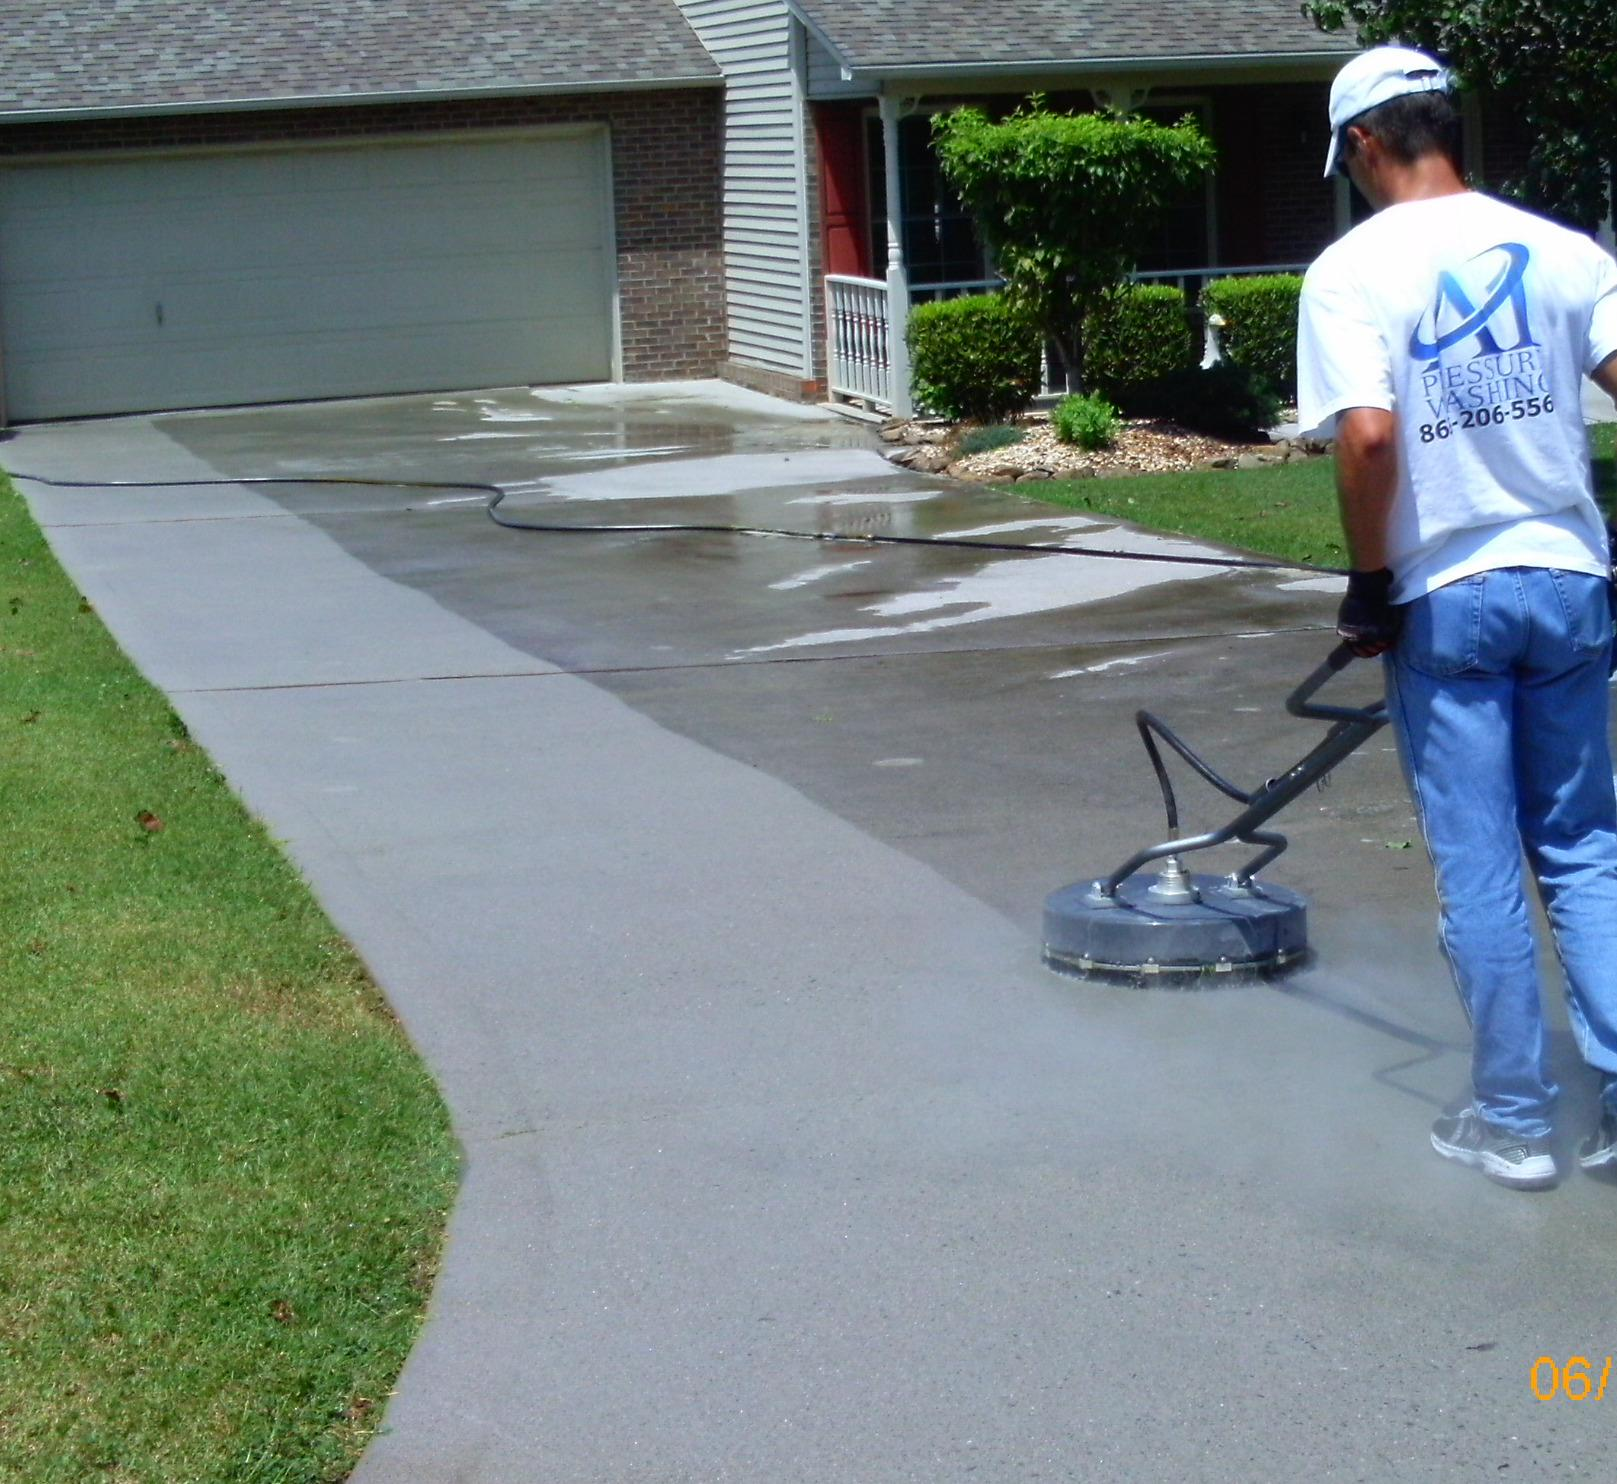 A1 Pressure Washing - Maryville, TN image 2